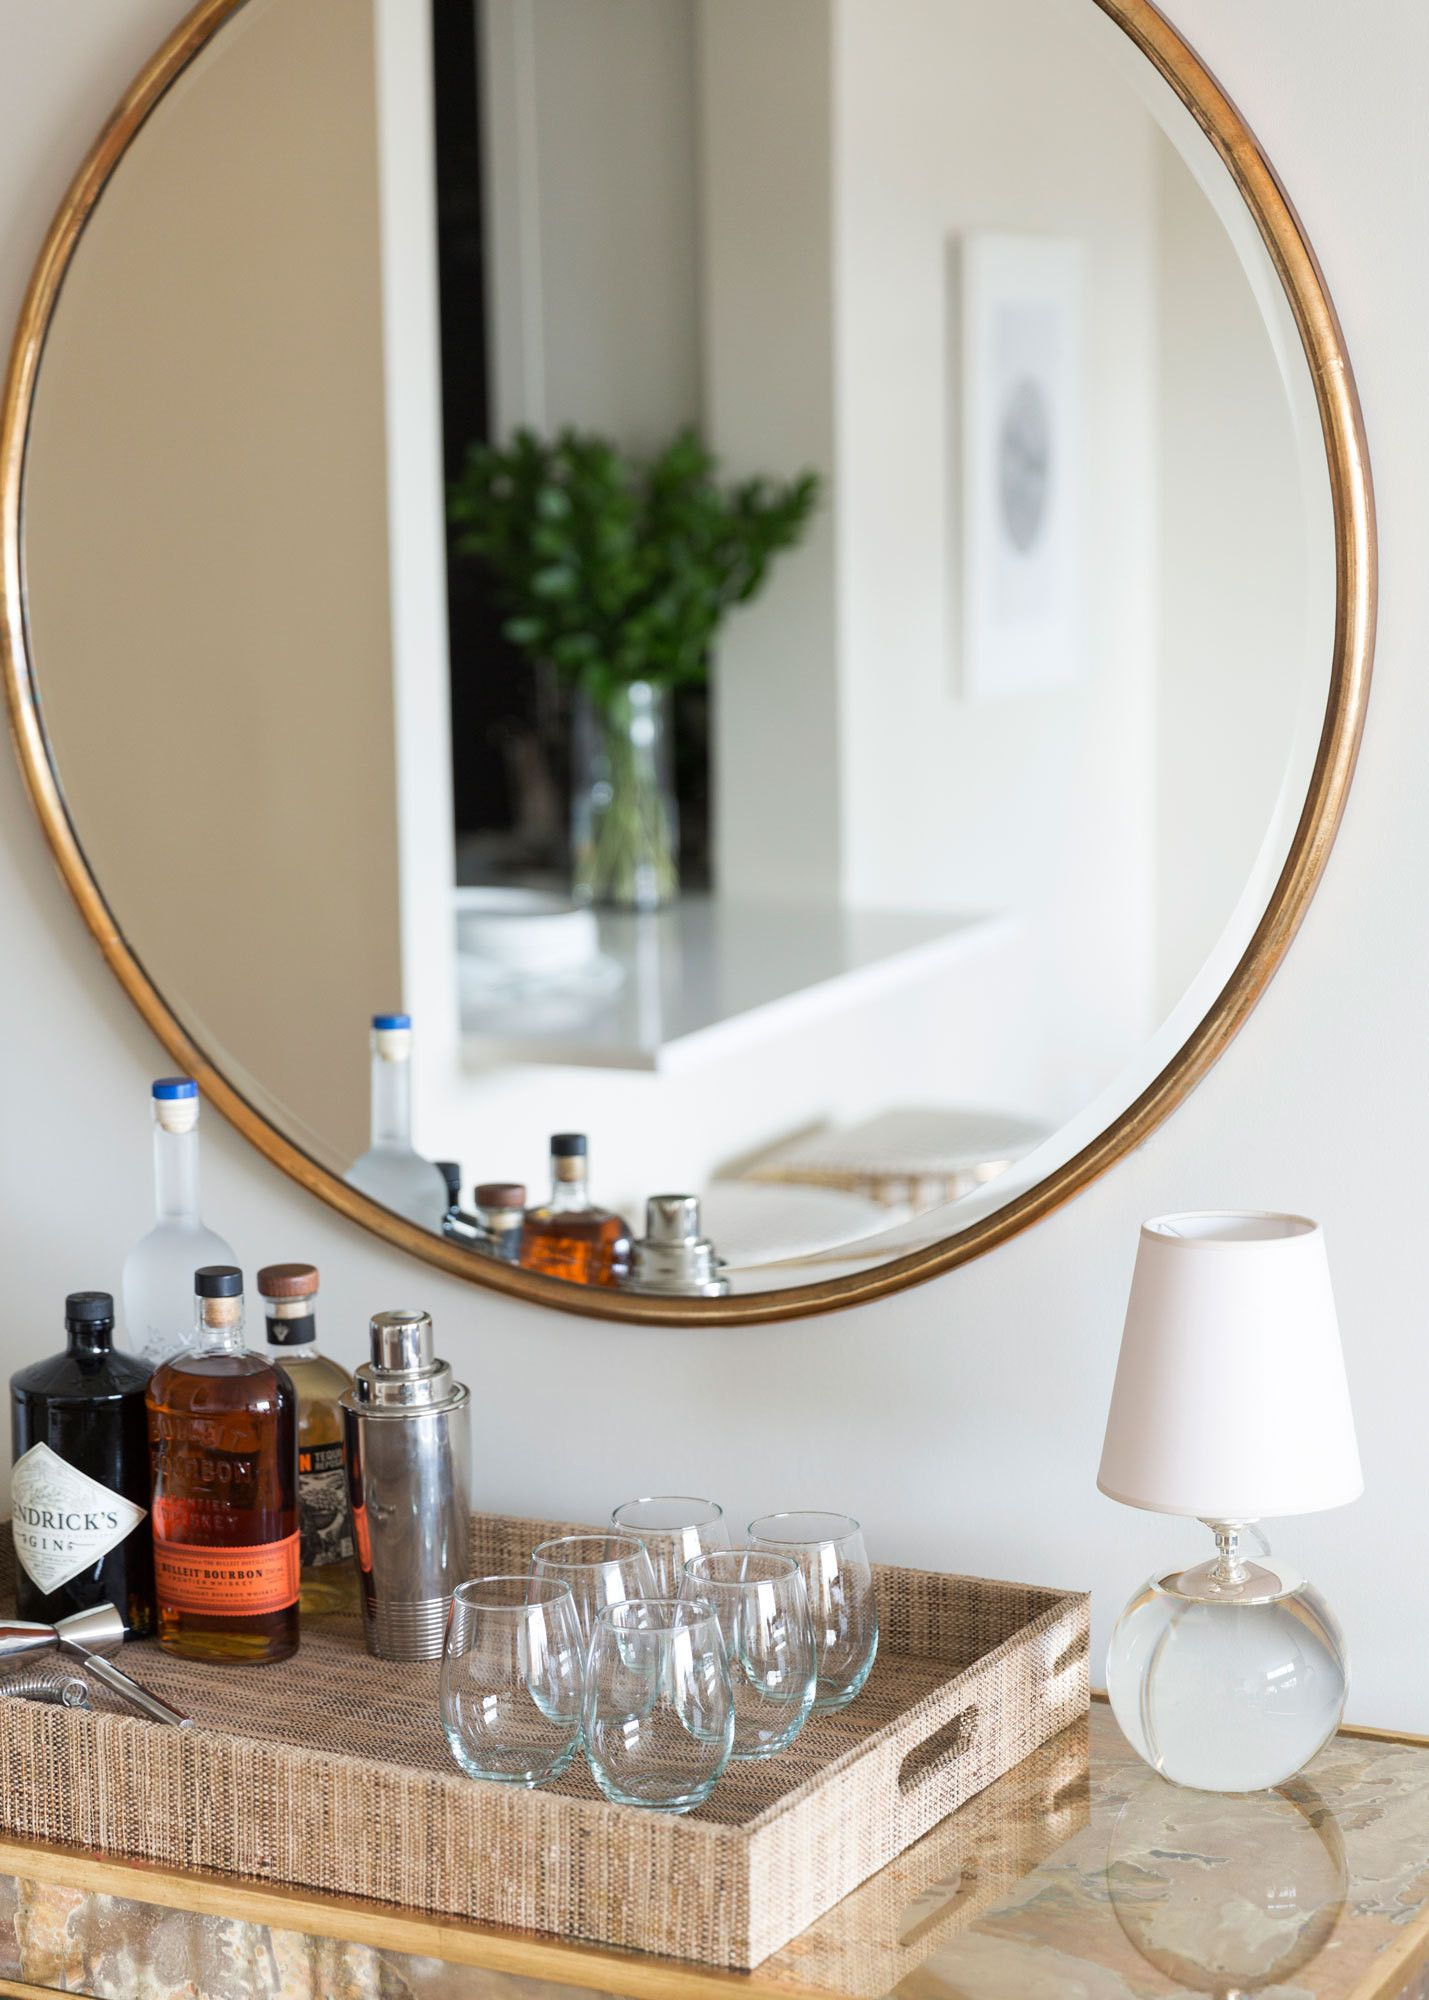 A Designer Spin on Small-Space Living | Small spaces, Spaces and Bar ...